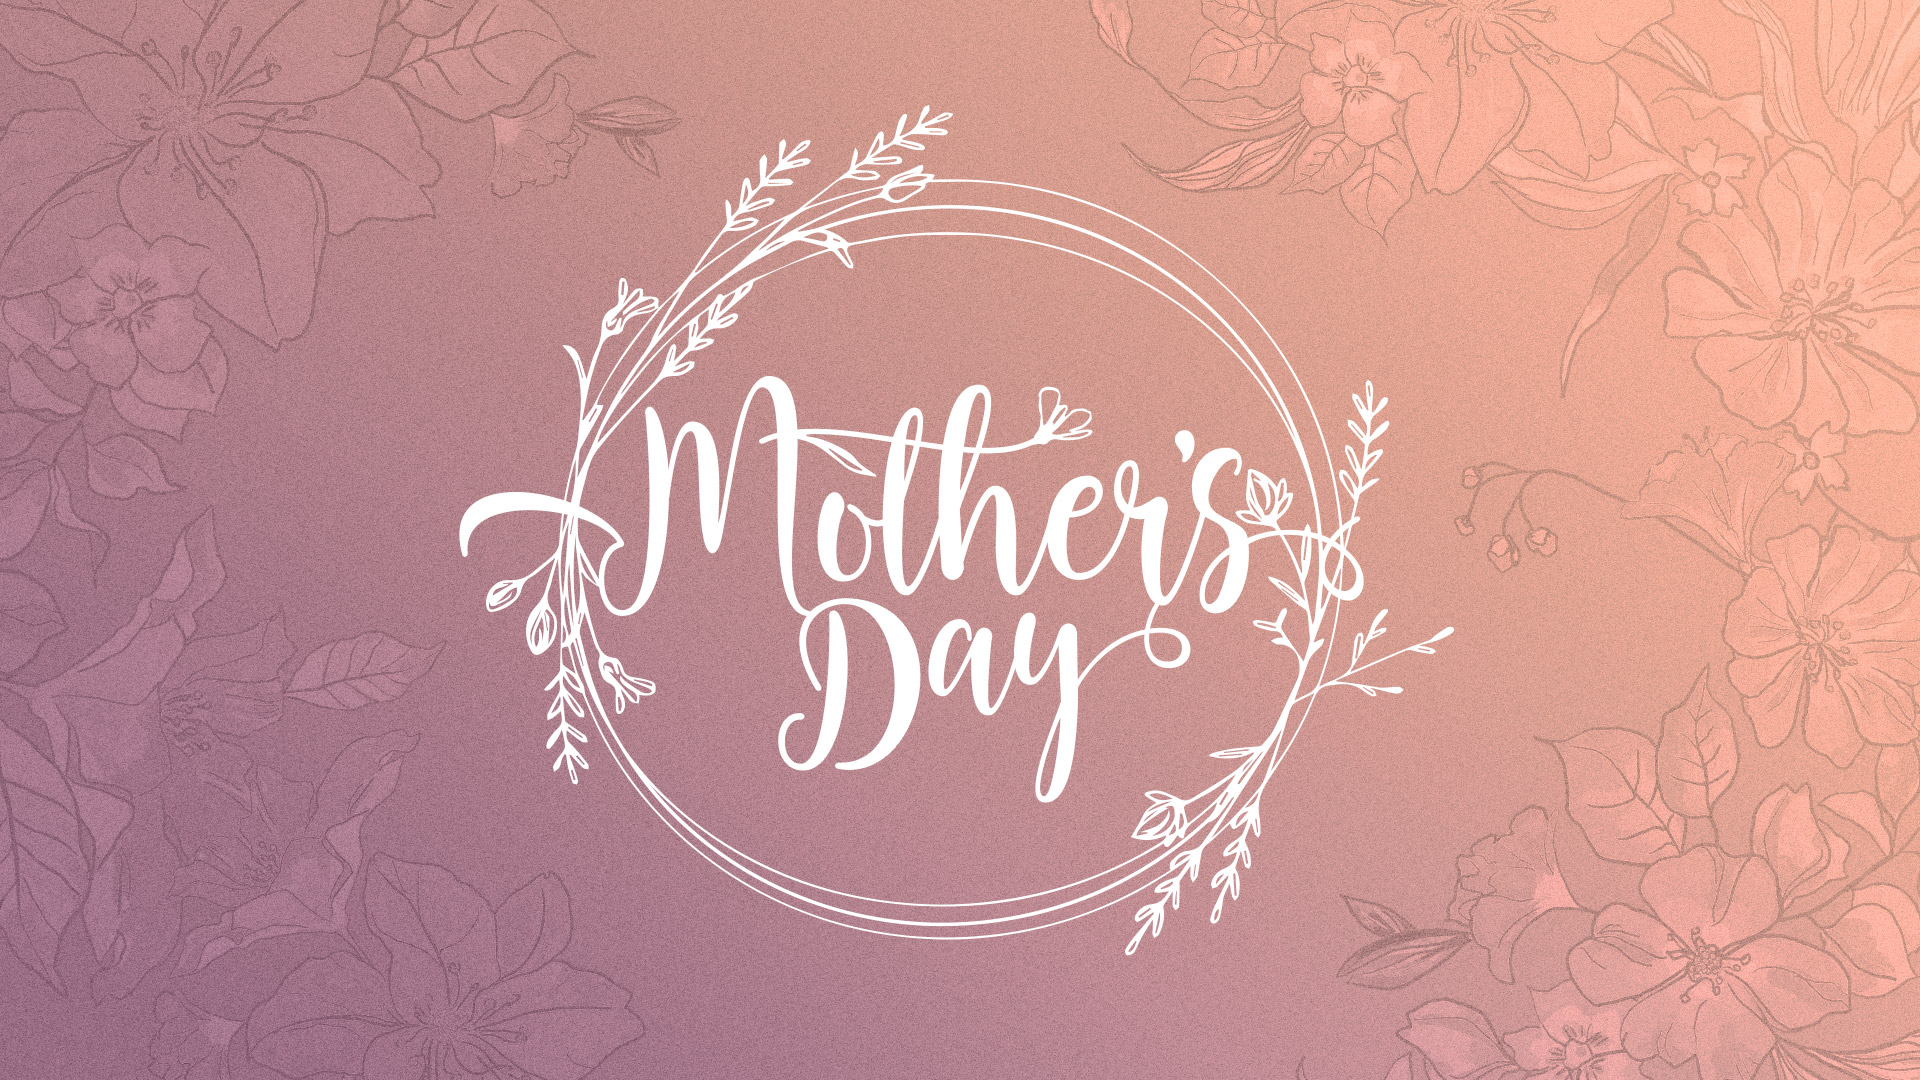 TITLE2-MothersDay2019.jpg